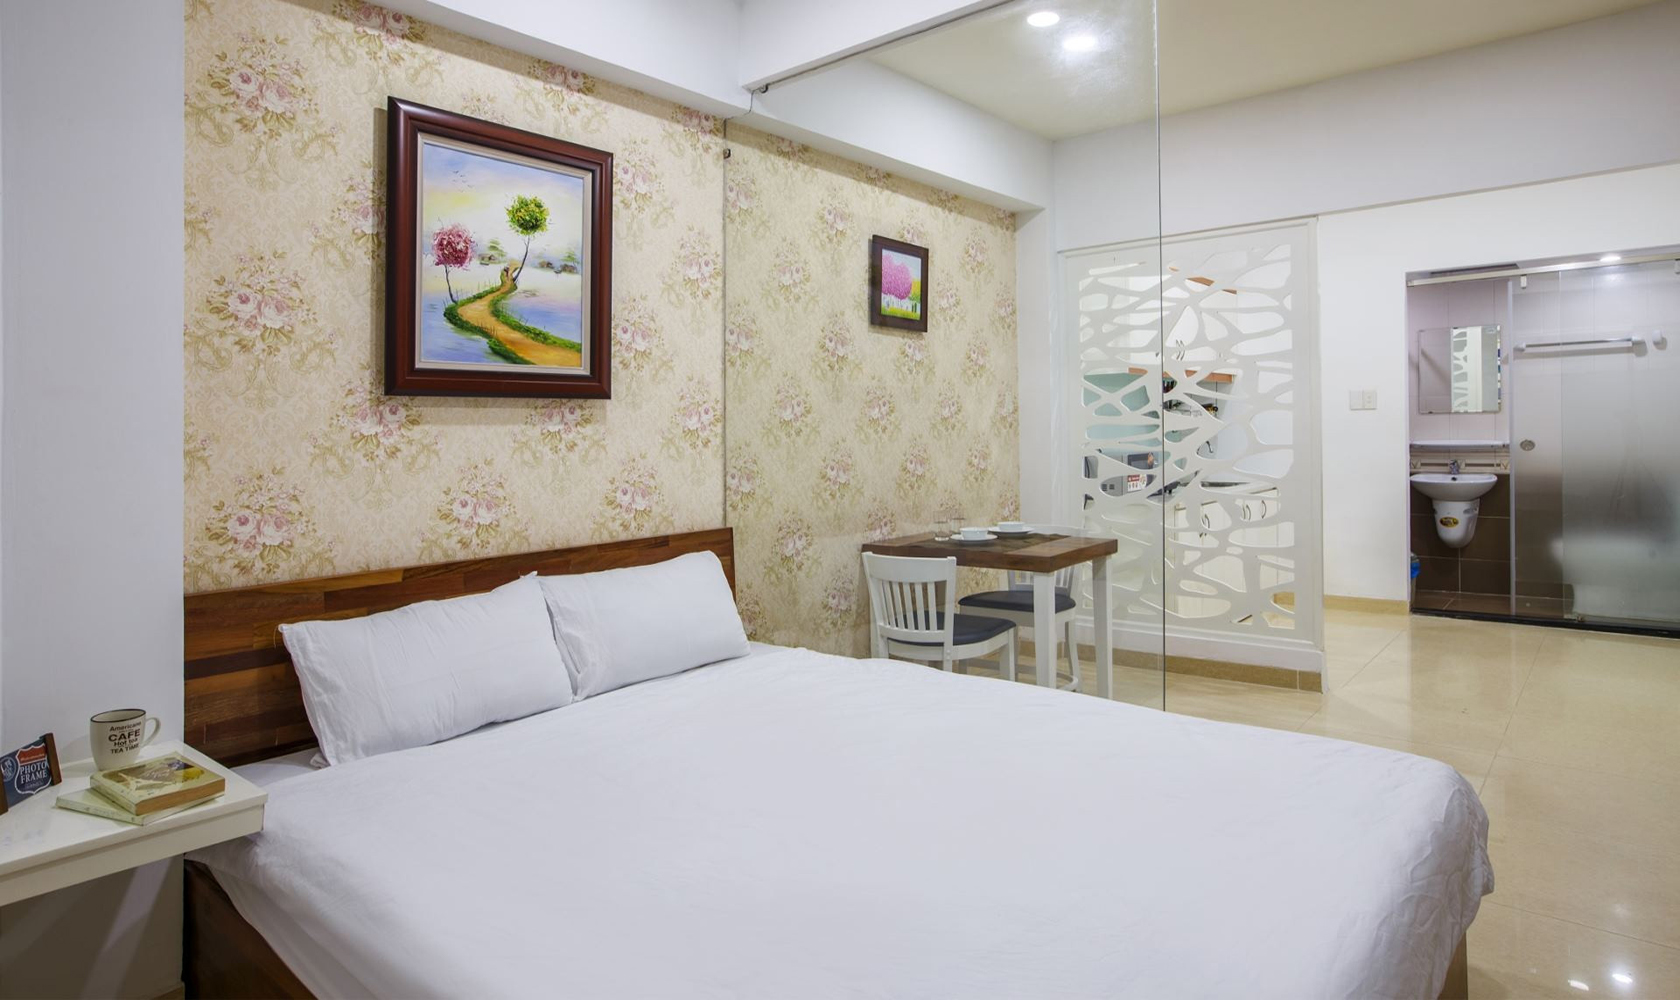 City House Serviced apartment for rent in District 3 HCMC D399151 (3)